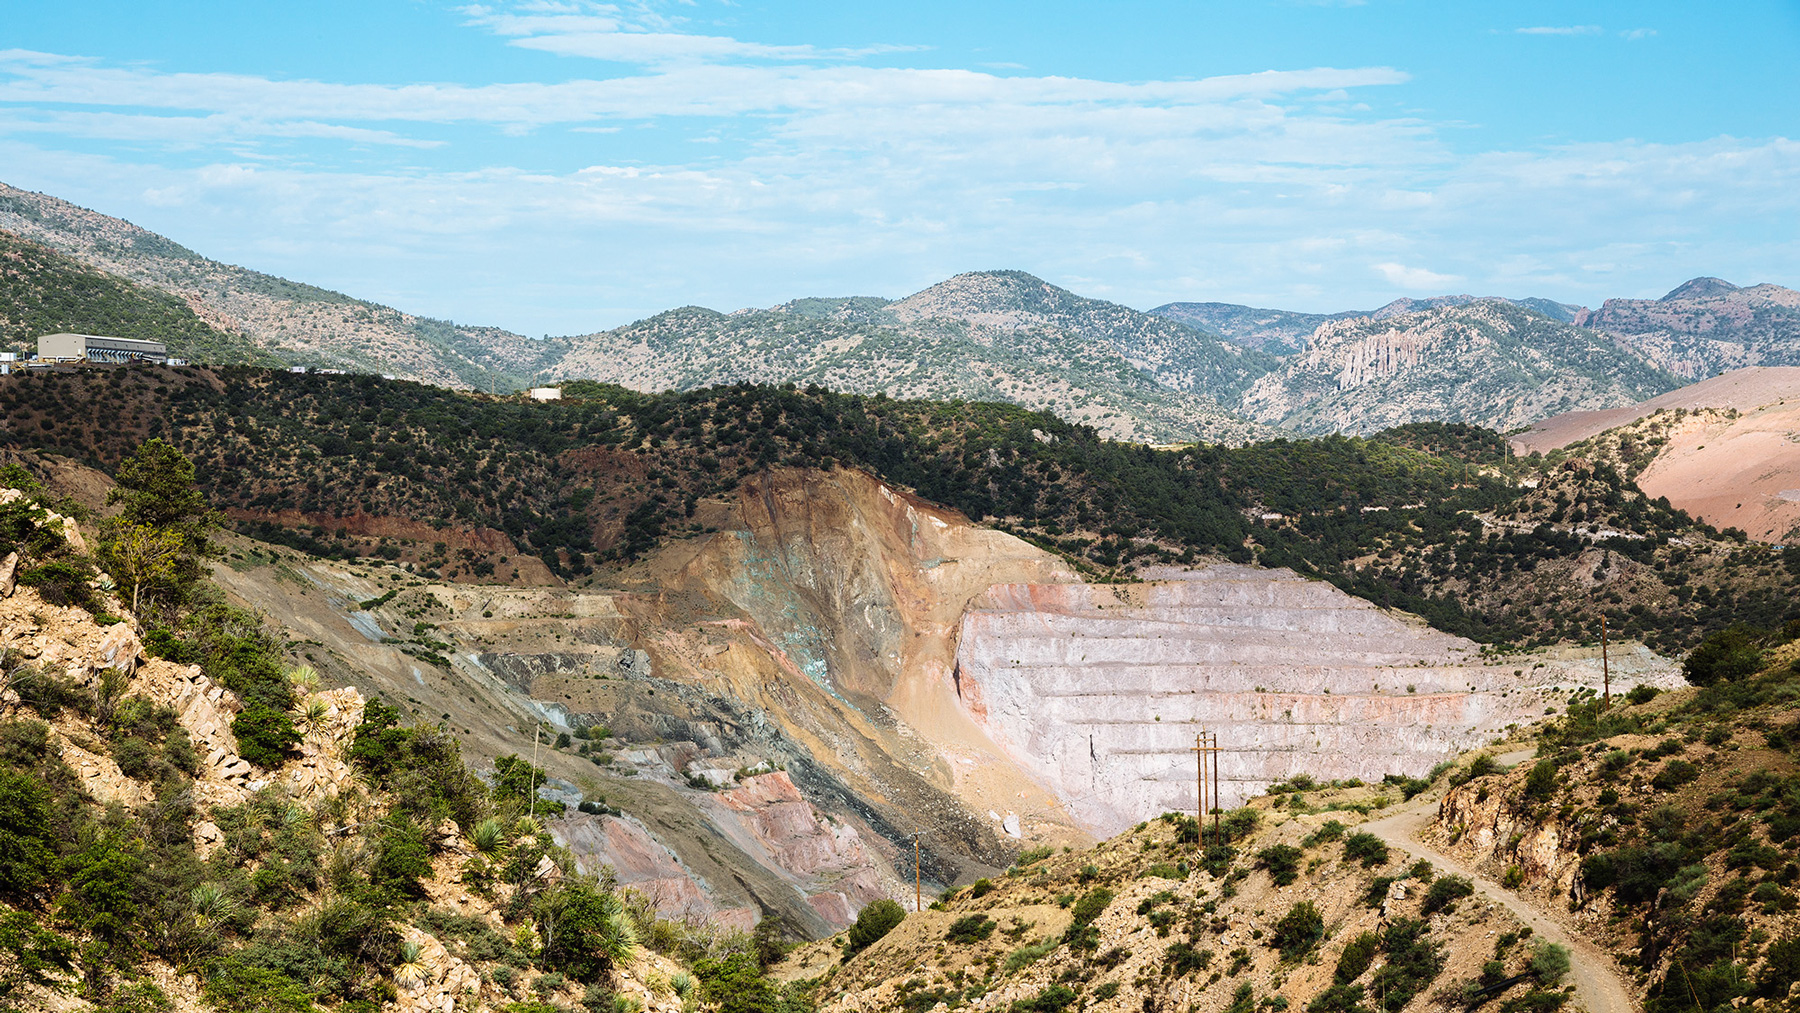 A strip-mining site operated by BHP Copper Inc. near Globe, Ariz., contaminated wells nearly 50 years ago. Mining throughout the country has been attributed to a host of environmental issues. (Michael M. Santiago/News21)